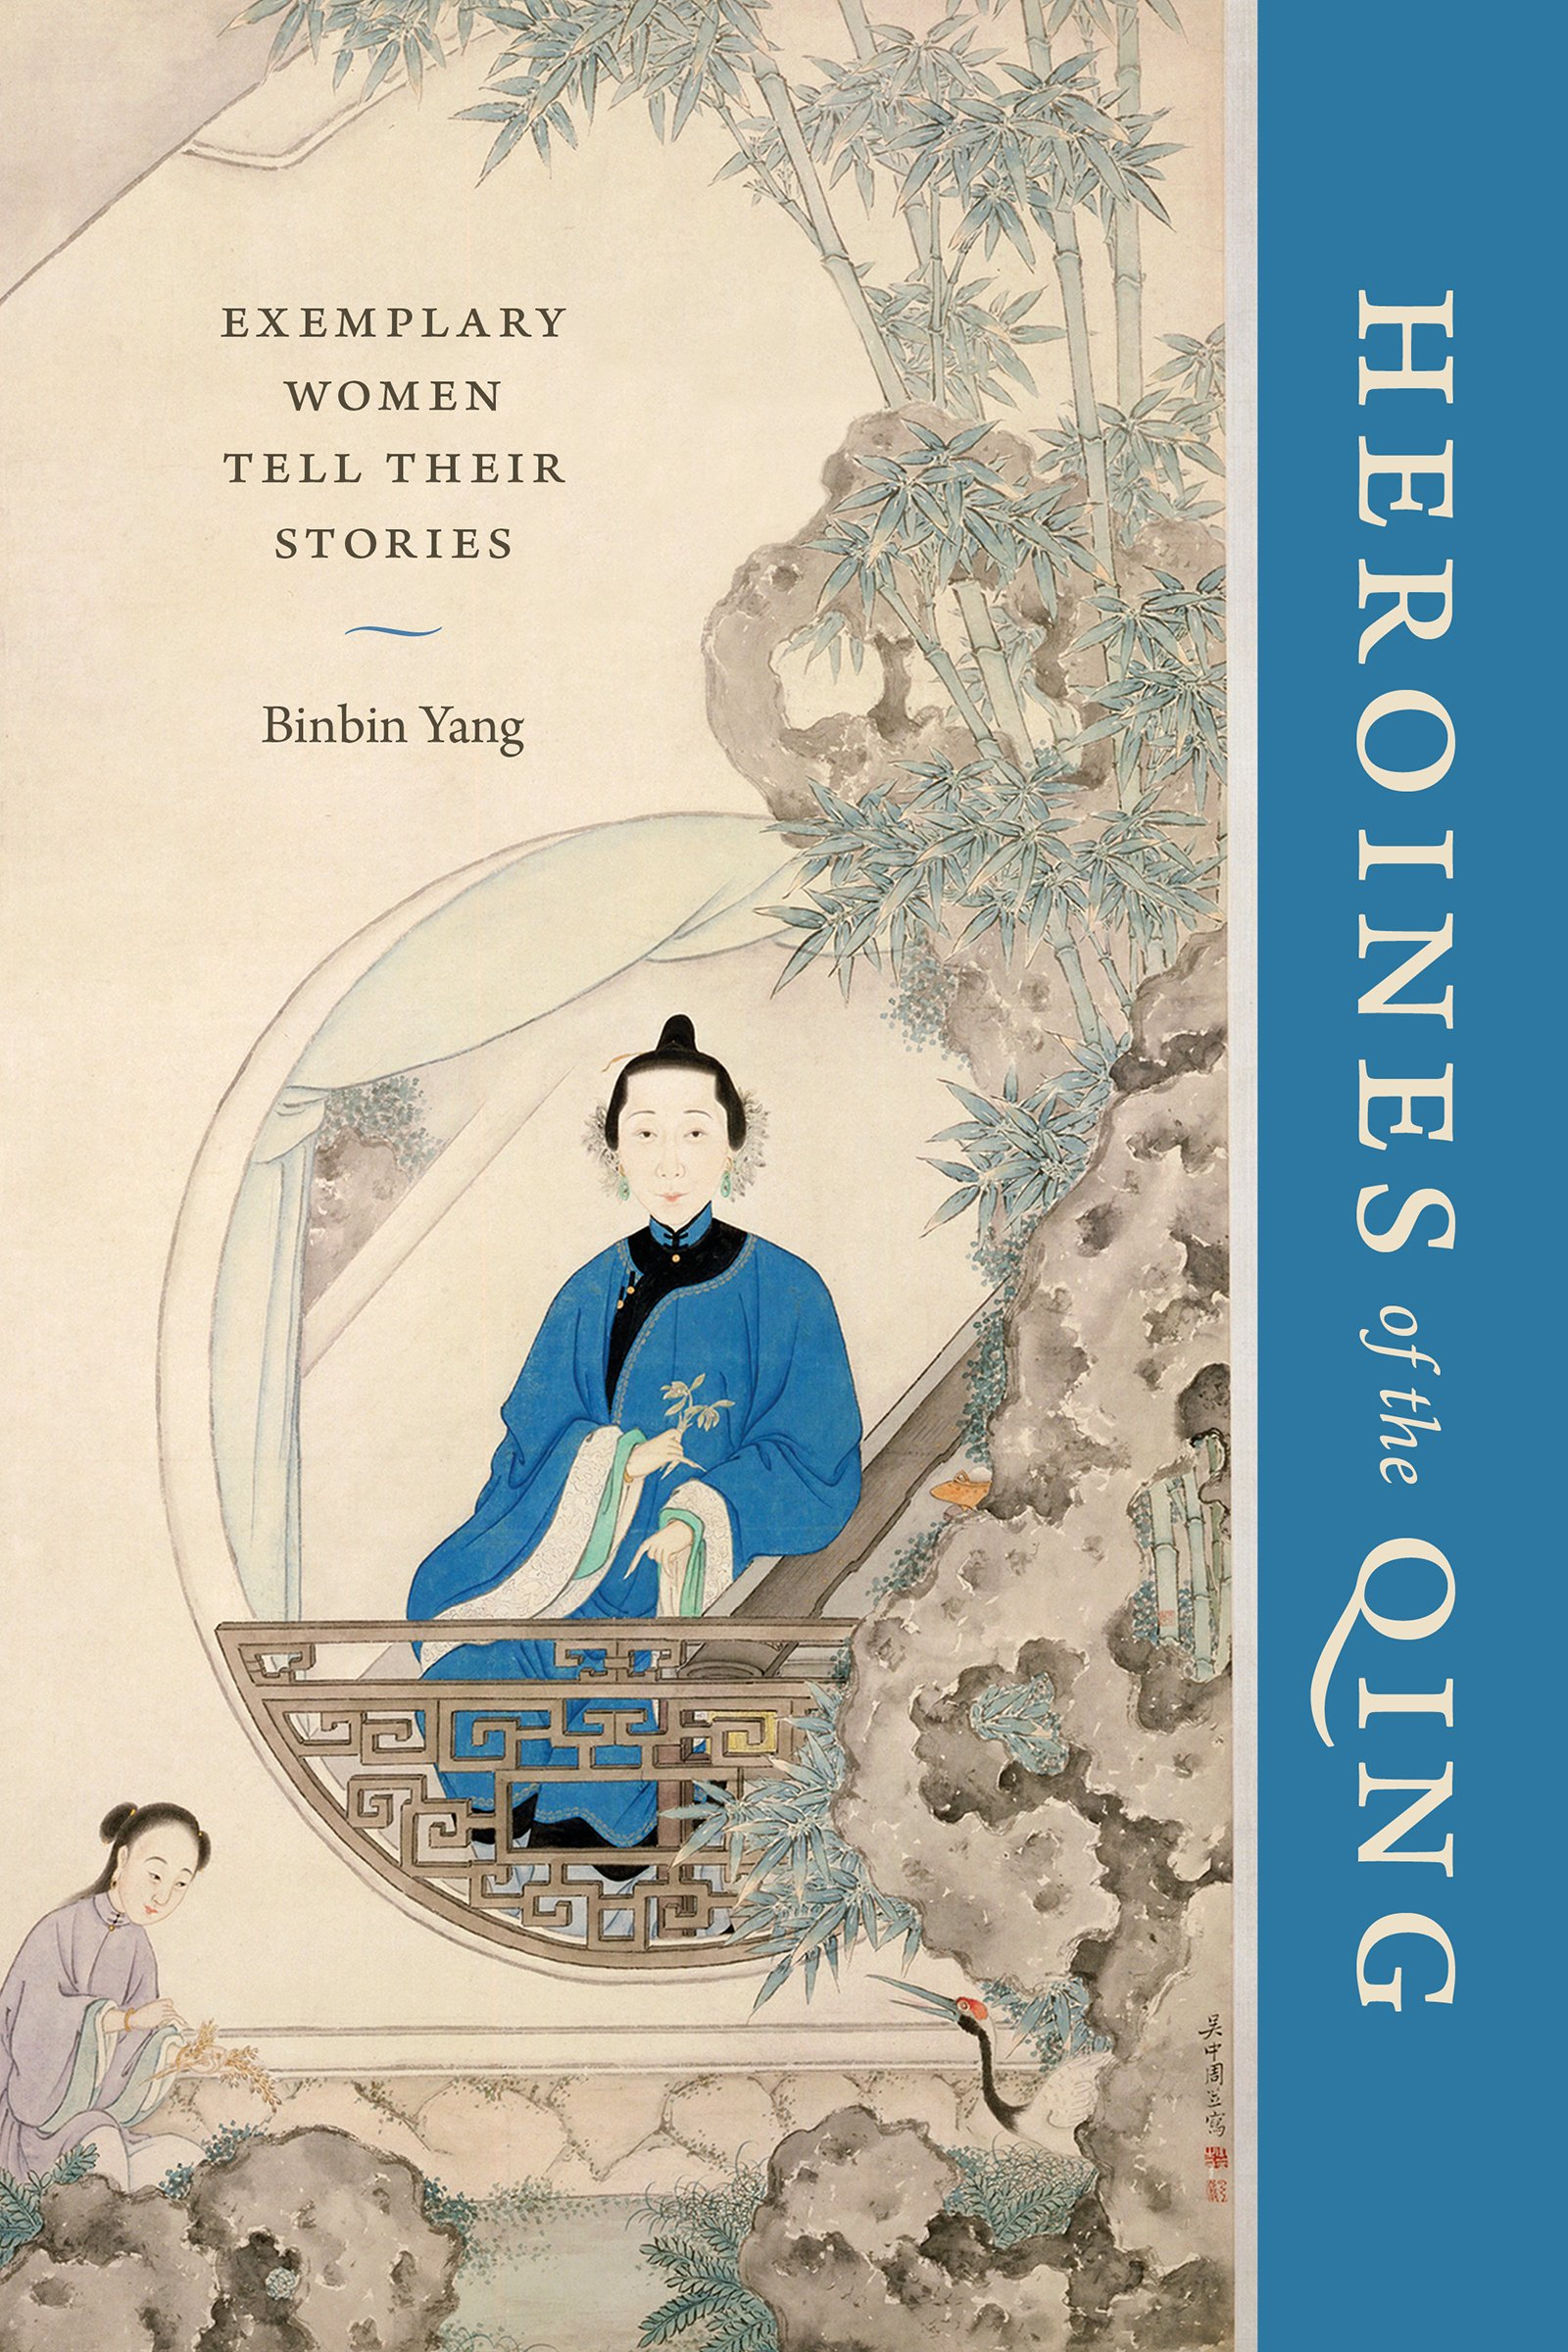 Heroines of the Qing: Exemplary Women Tell Their Stories (Modern Language Initiative Books) by University of Washington Press